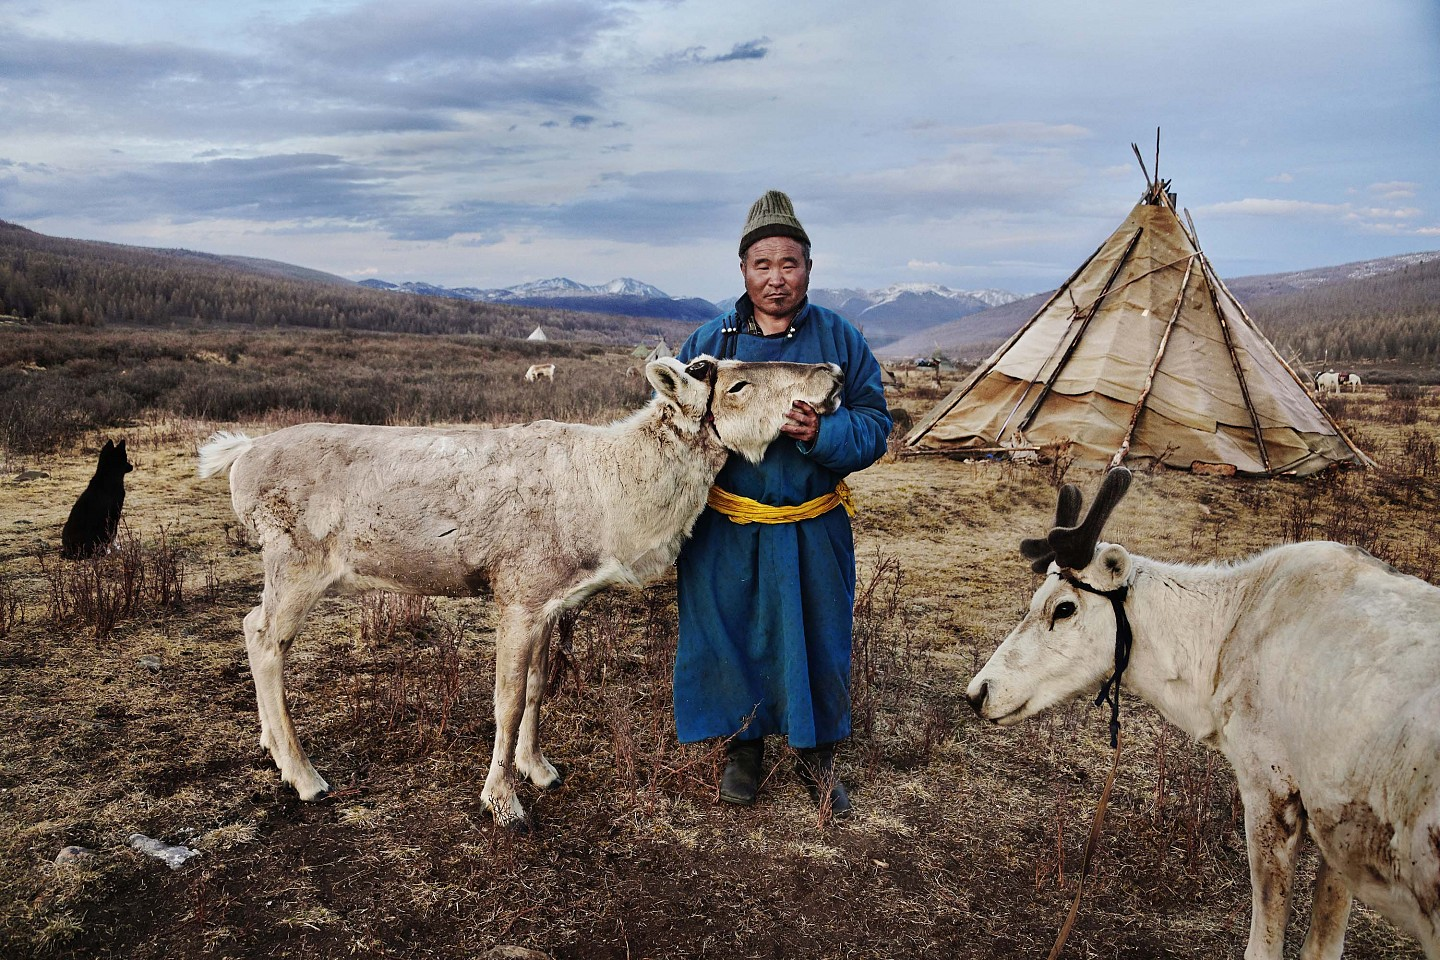 Steve McCurry ,   Mongolia - 10033  ,  2018     FujiFlex Crystal Archive Print ,  30 x 40 in. (76.2 x 101.6 cm)     10033